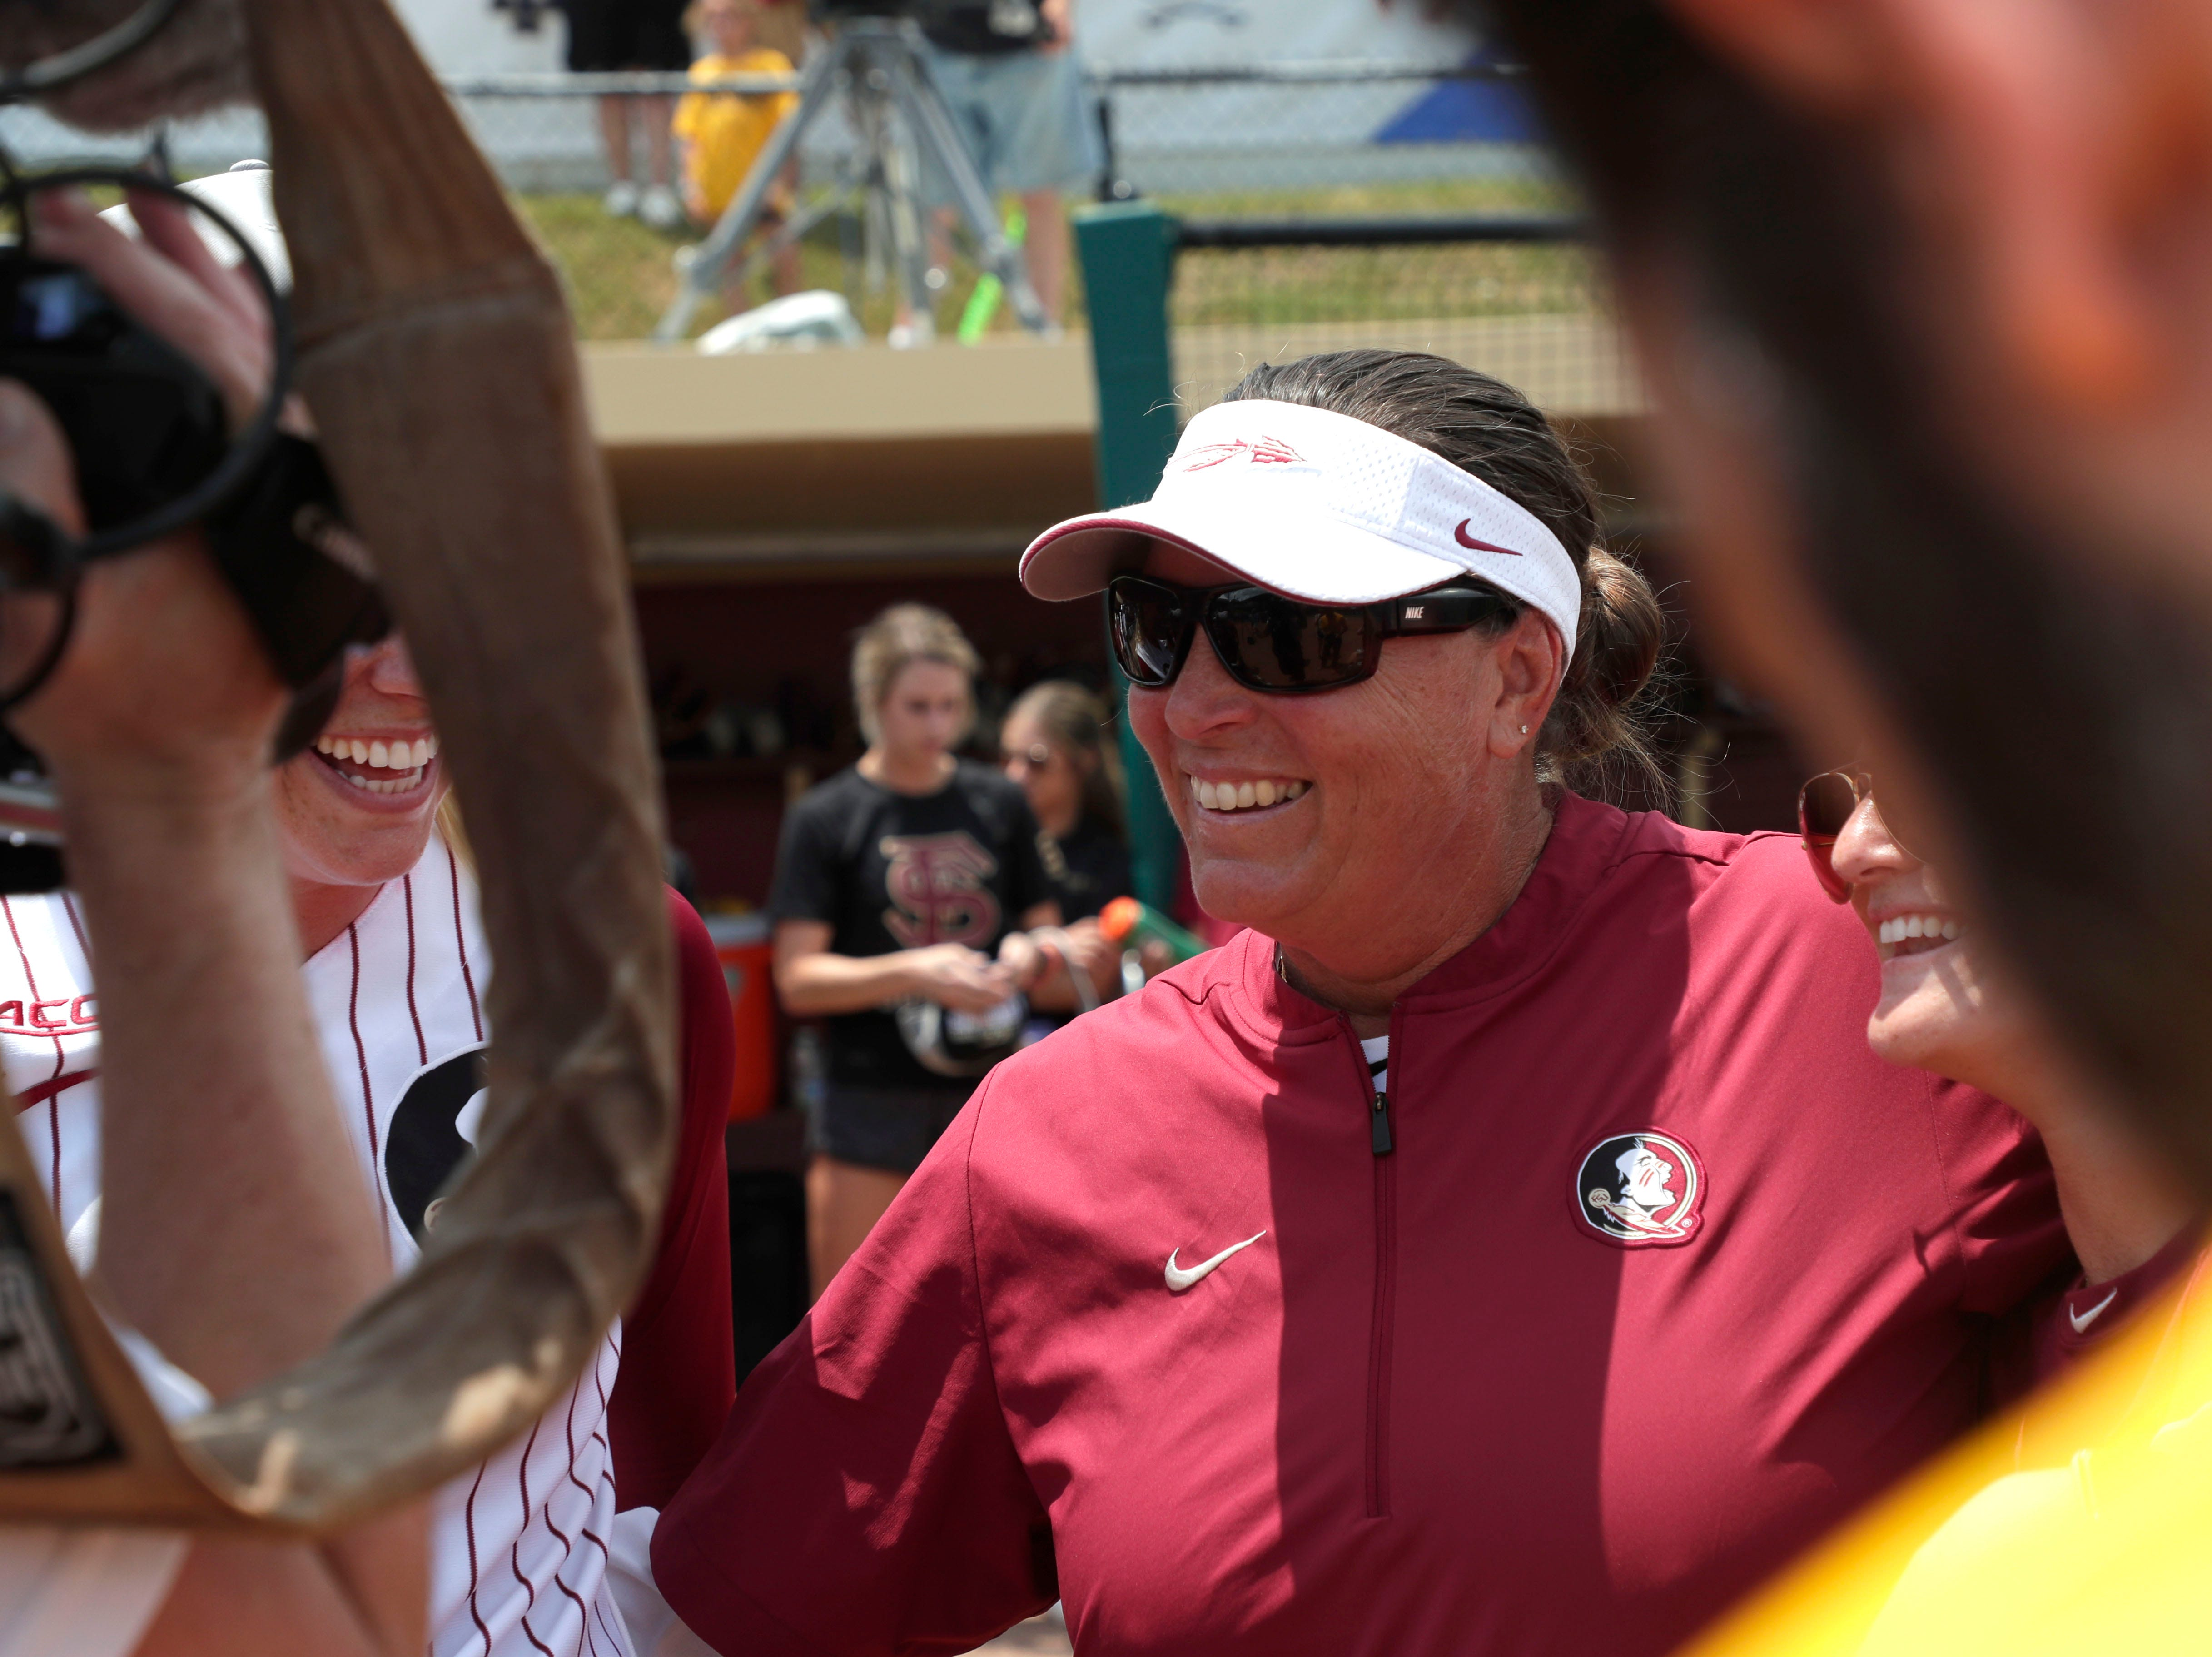 Florida State Seminoles head coach Lonni Alameda celebrates her team's victory. The Florida State Seminoles celebrate their victory over the UNC Tar Heels for the ACC Softball Championship title Saturday, May 11, 2019.